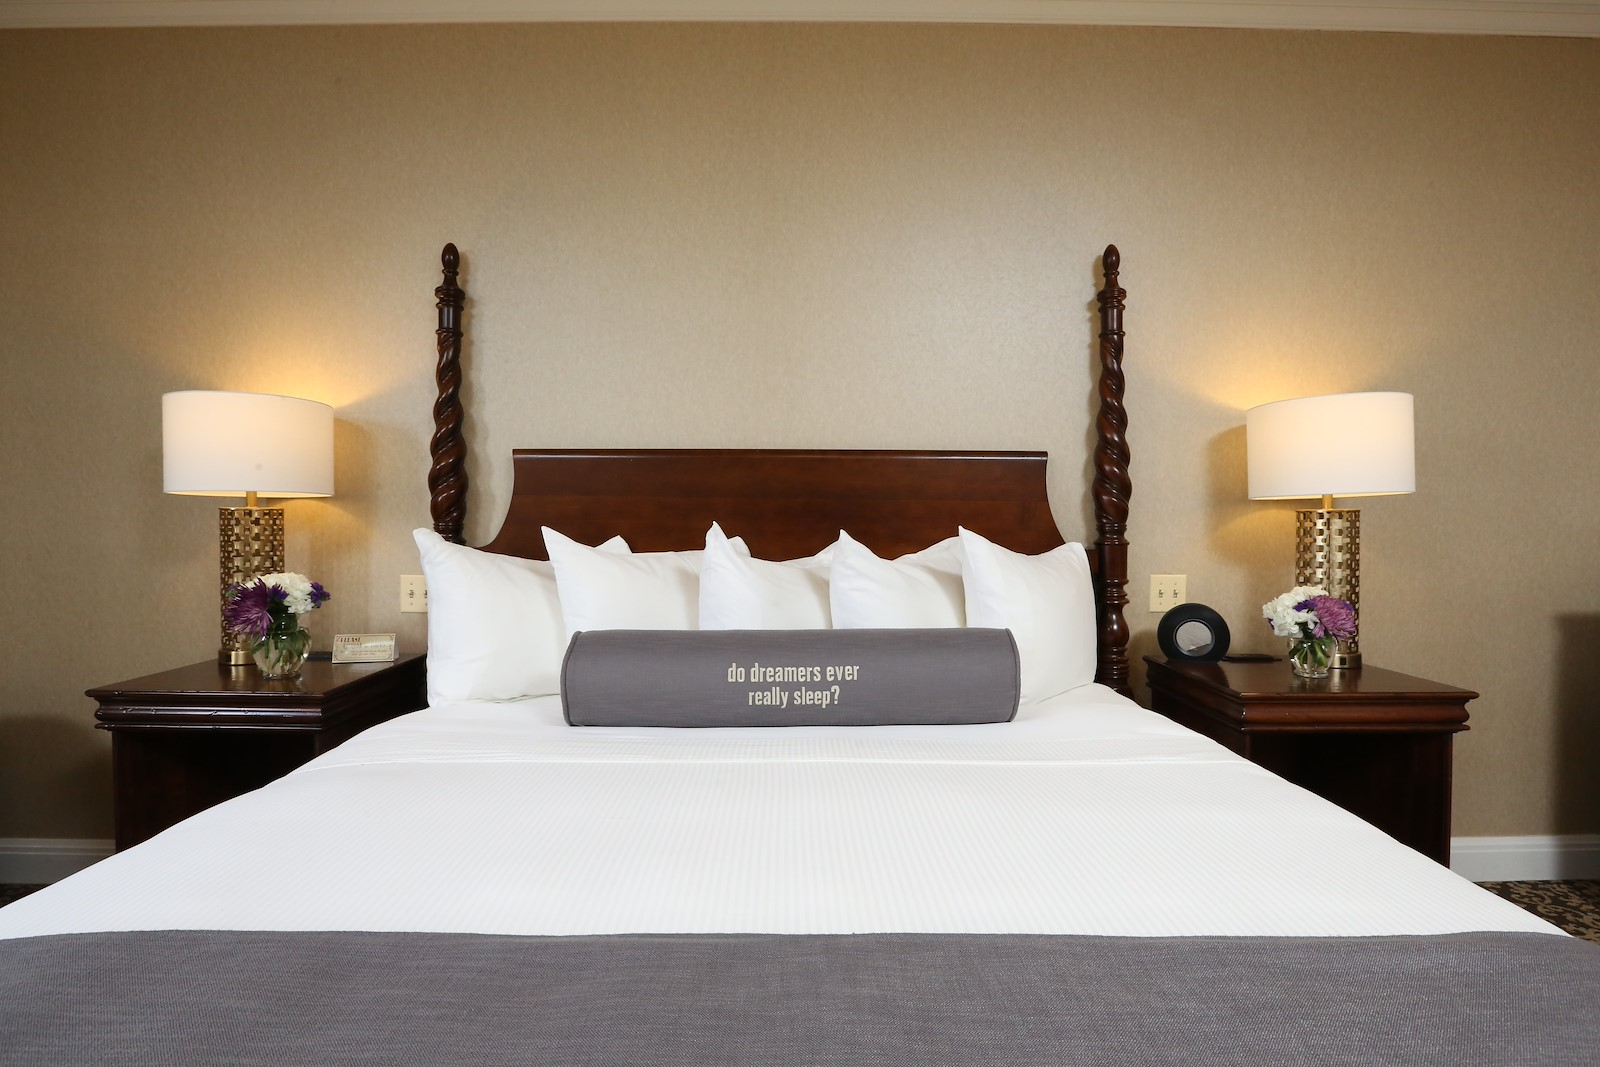 Guest room at Royal Park Hotel